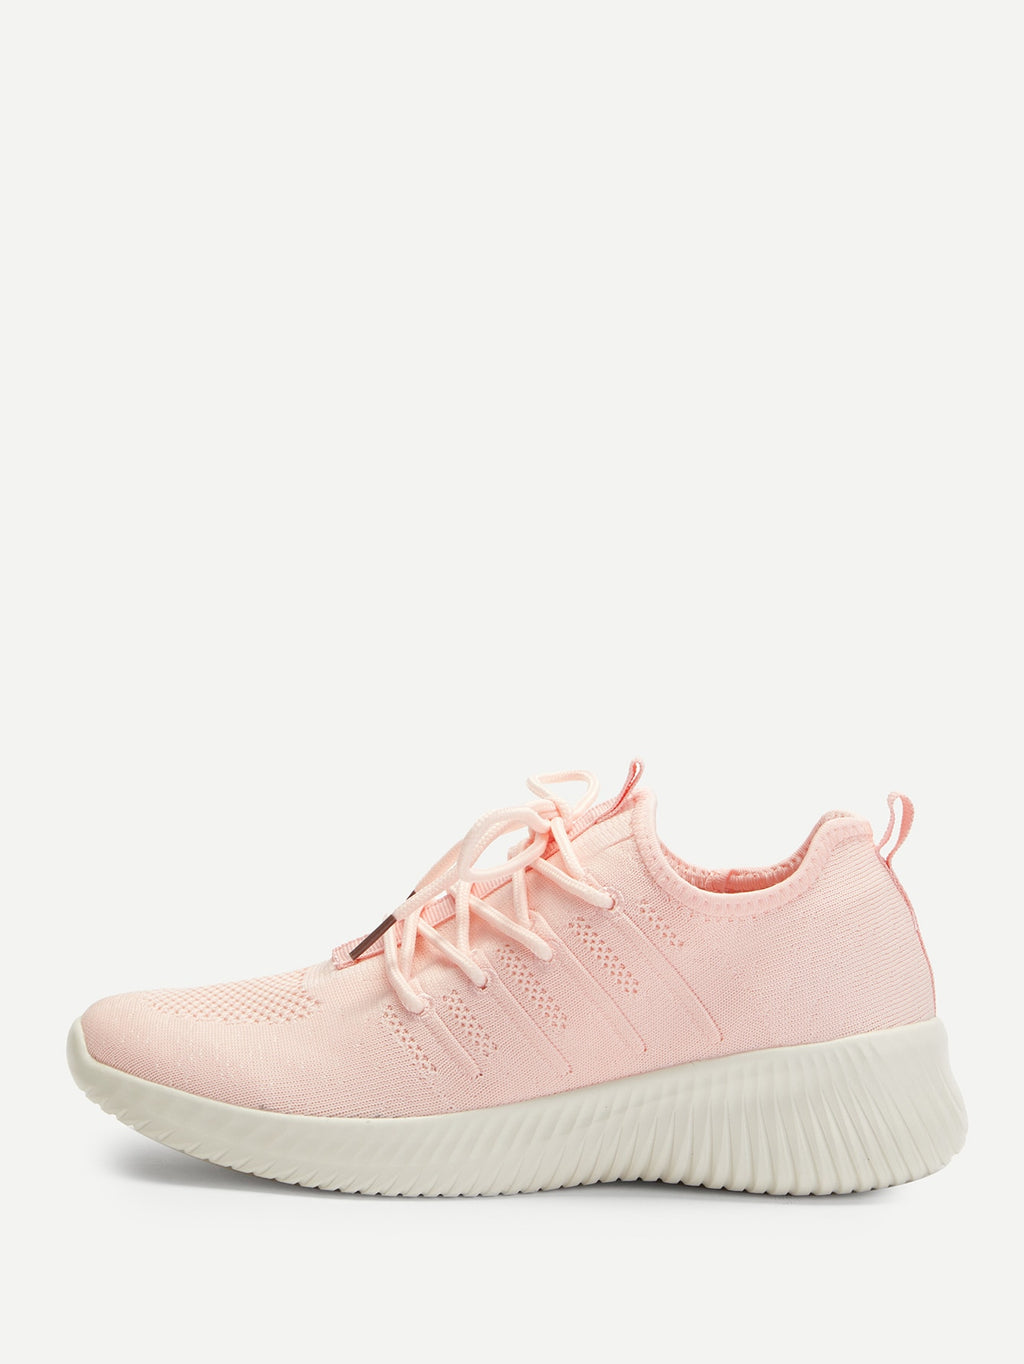 Knit Design Lace Up Sneakers